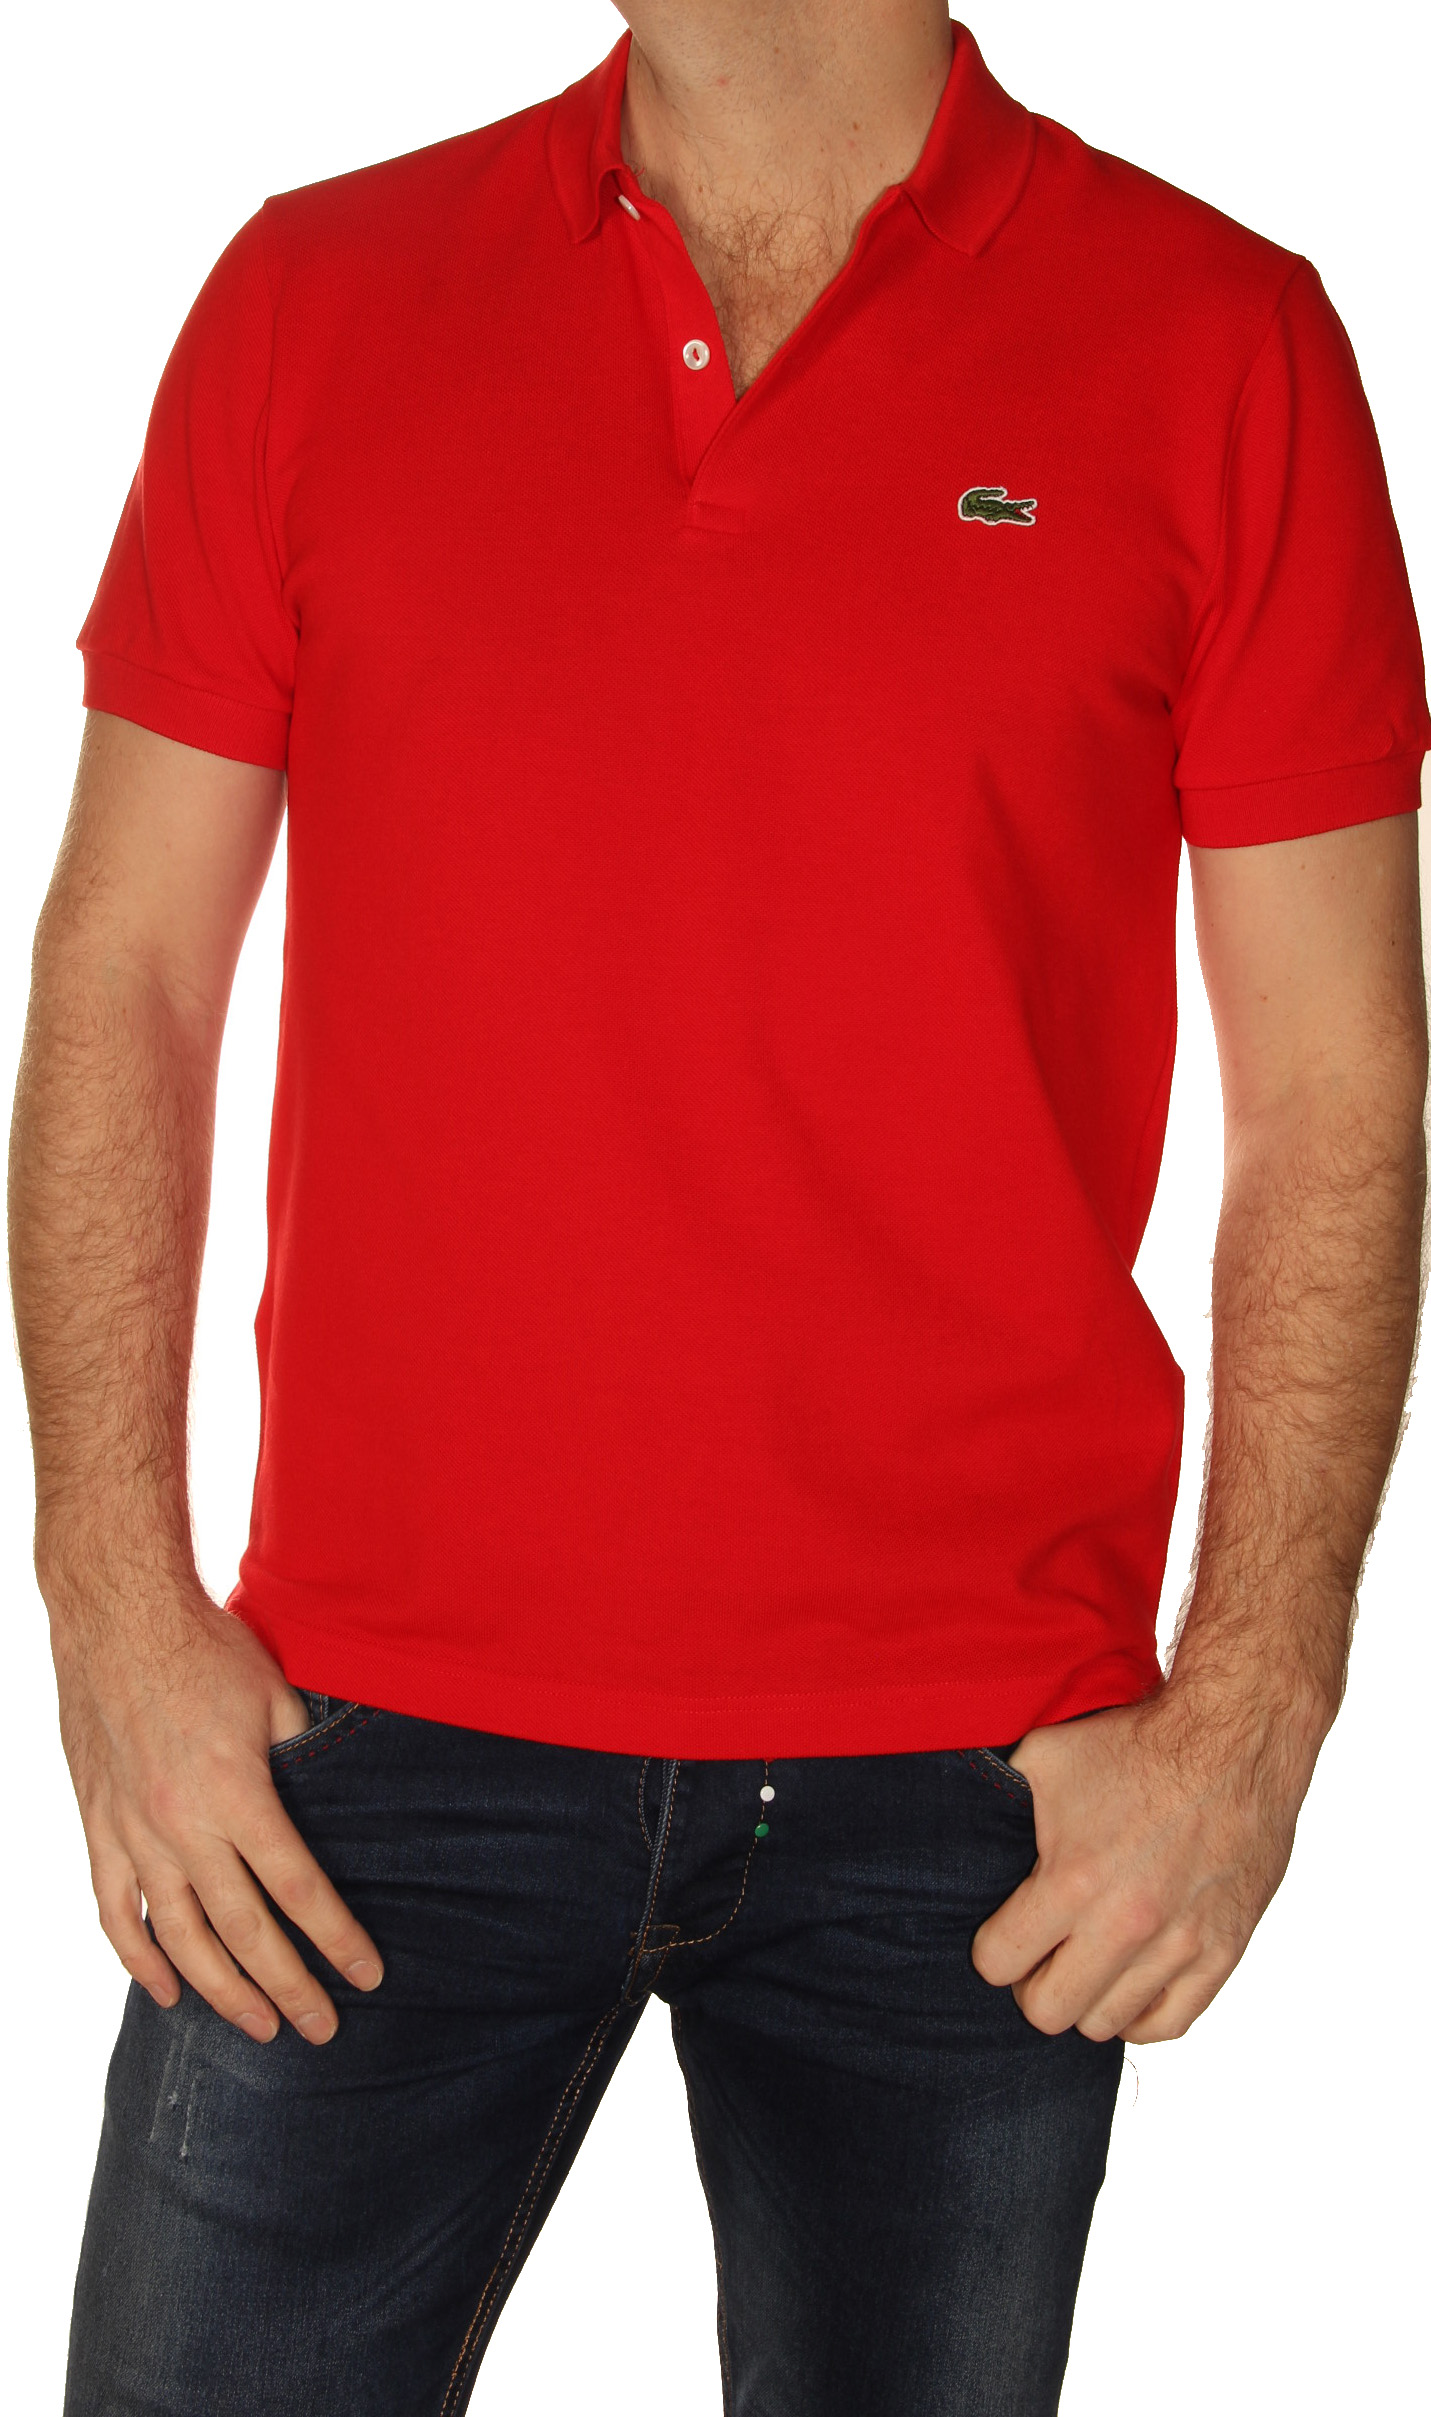 upload/product_display_image/201302/lacoste_ph2403_cerise_a.jpg